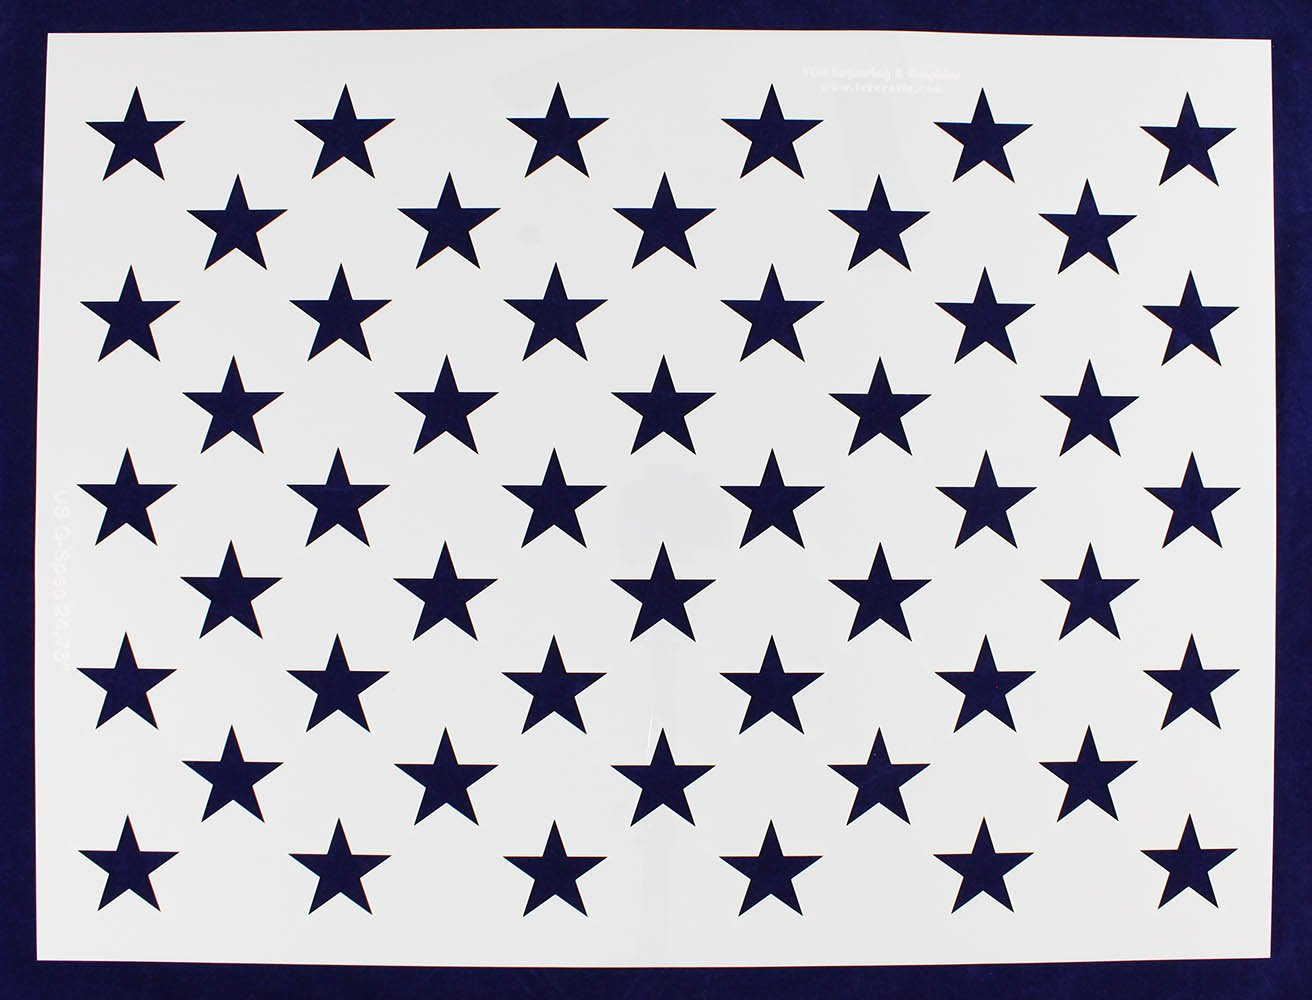 50 Star Field Stencil - US/American Flag - G-Spec 18''H x 24.73''L